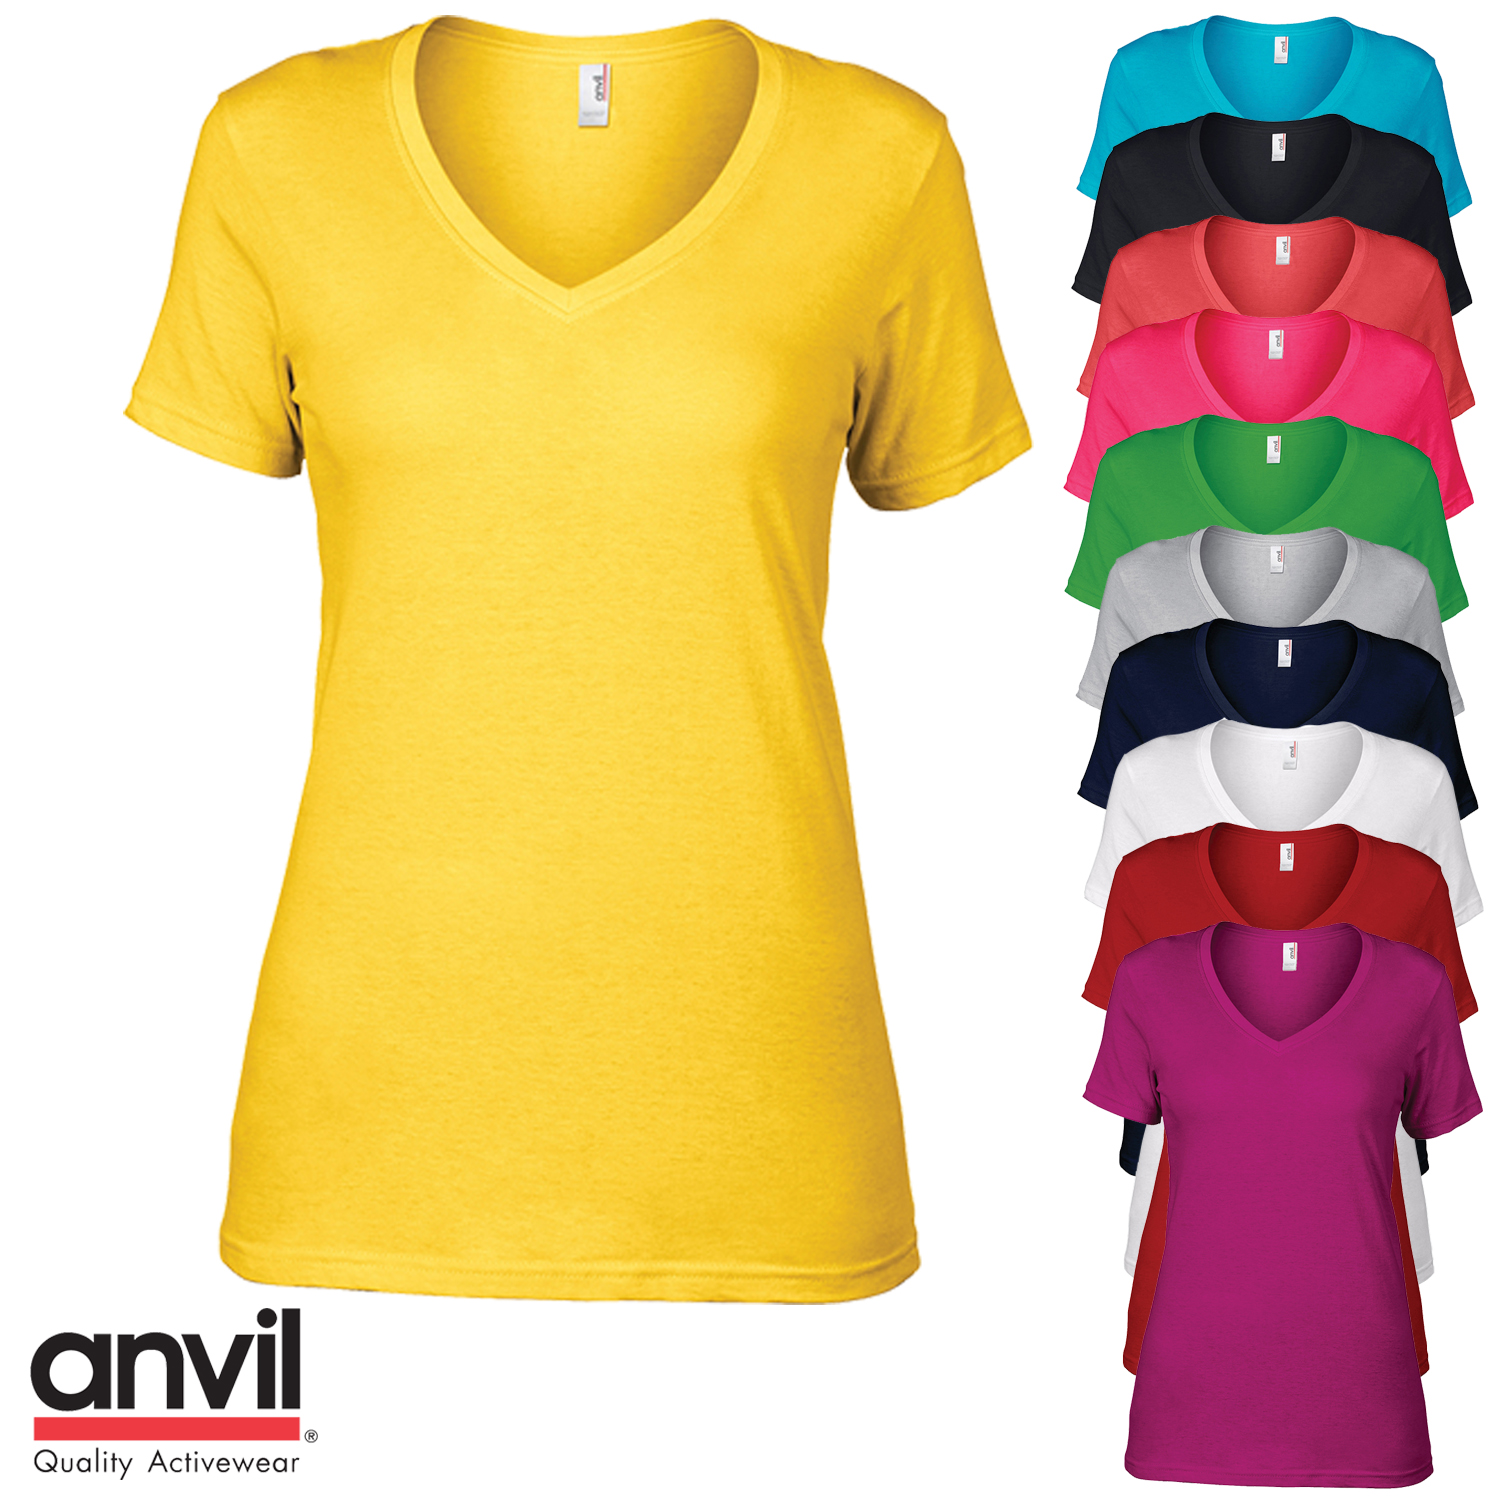 8161028560f2 Sentinel Anvil Women's Short sleeve V-Neck T-Shirt Ladies Slim Fit Plain  Casual Top